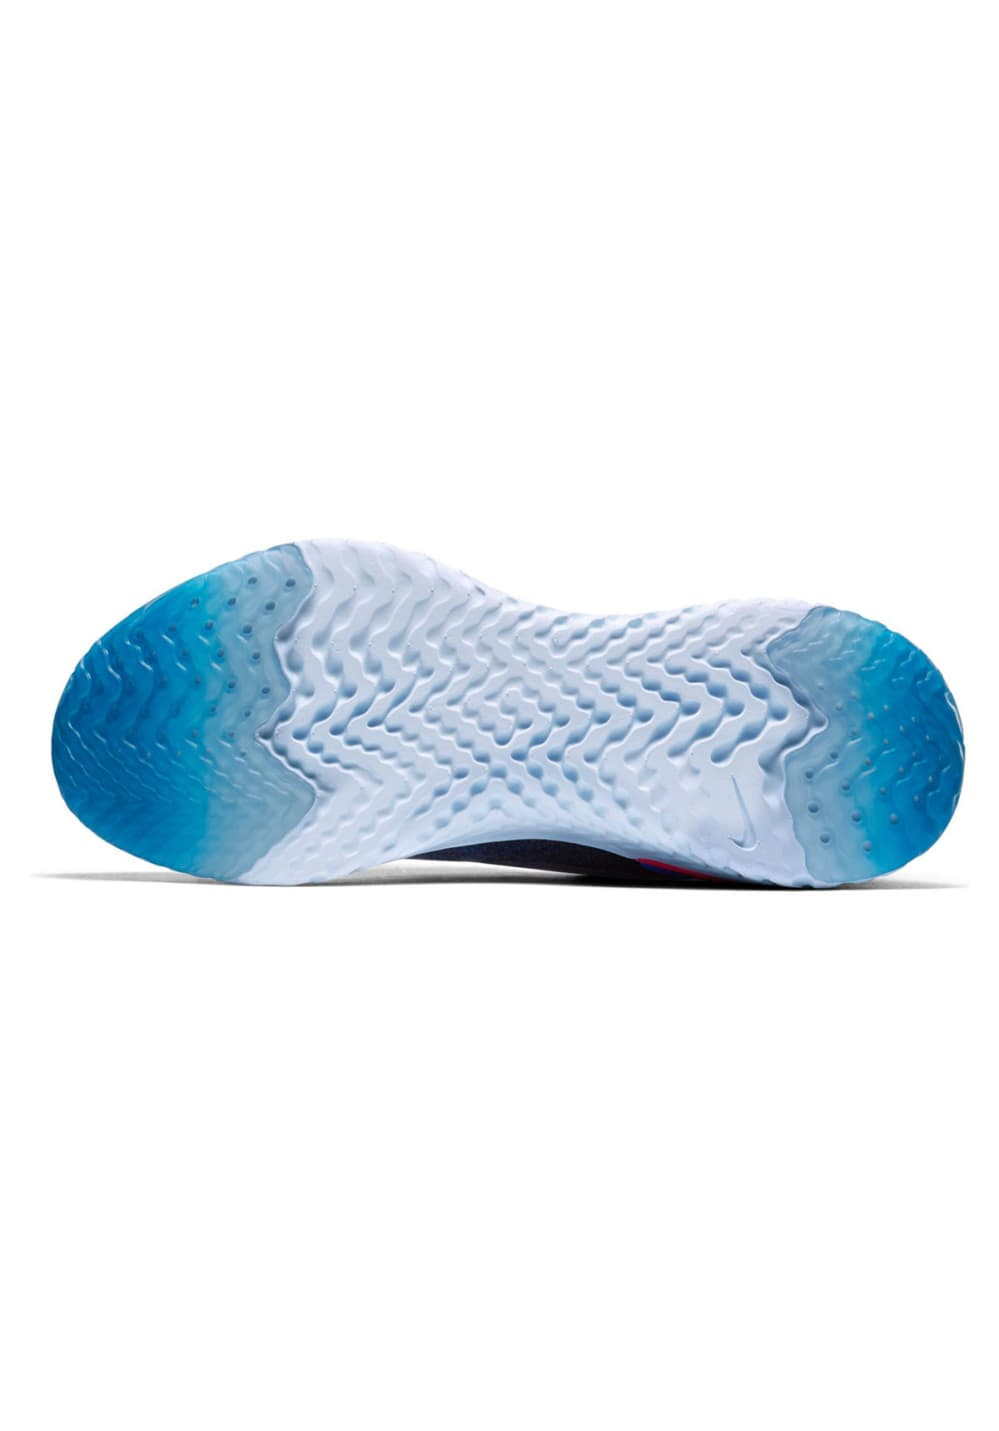 size 40 d777a 70ebd Nike Epic React Flyknit - Running shoes for Women - Blue